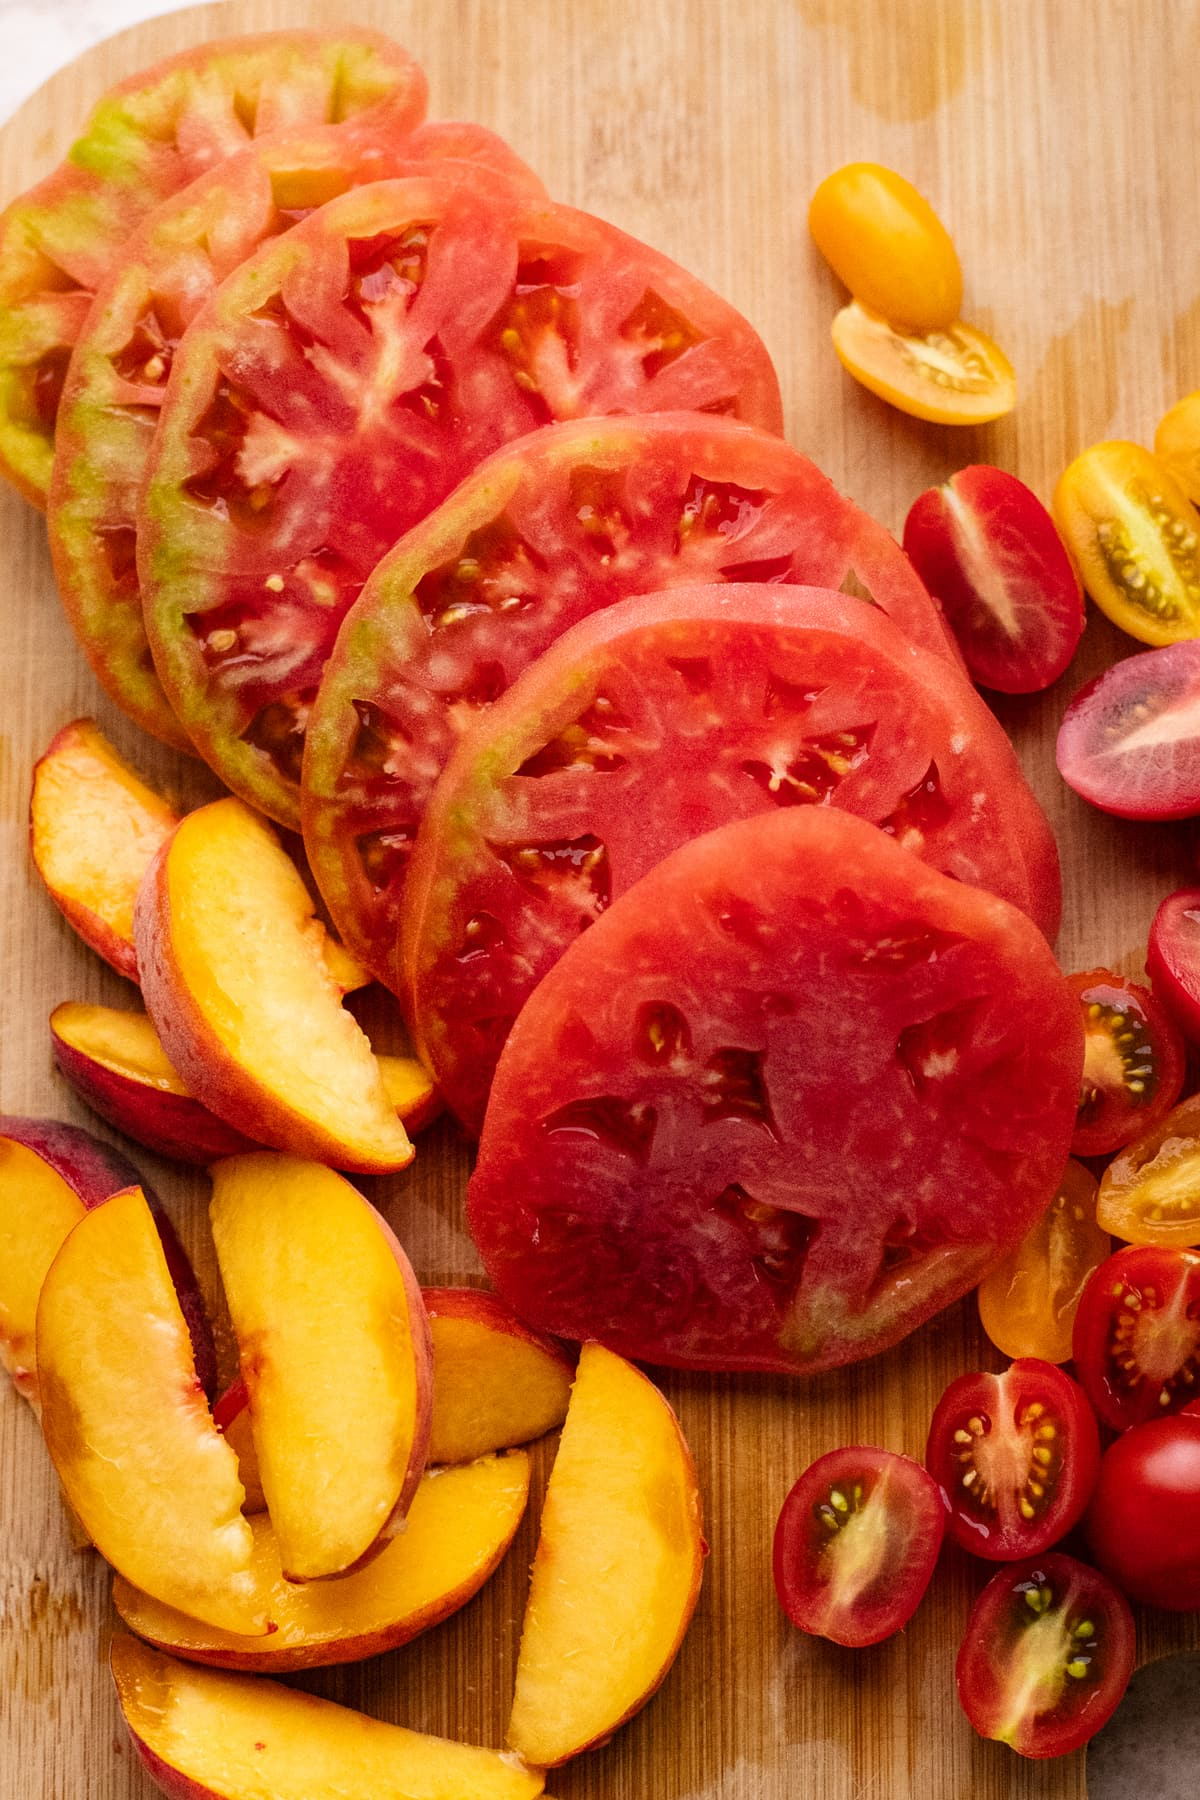 Slices of tomatoes and peaches arranged on brown wooden cutting board.